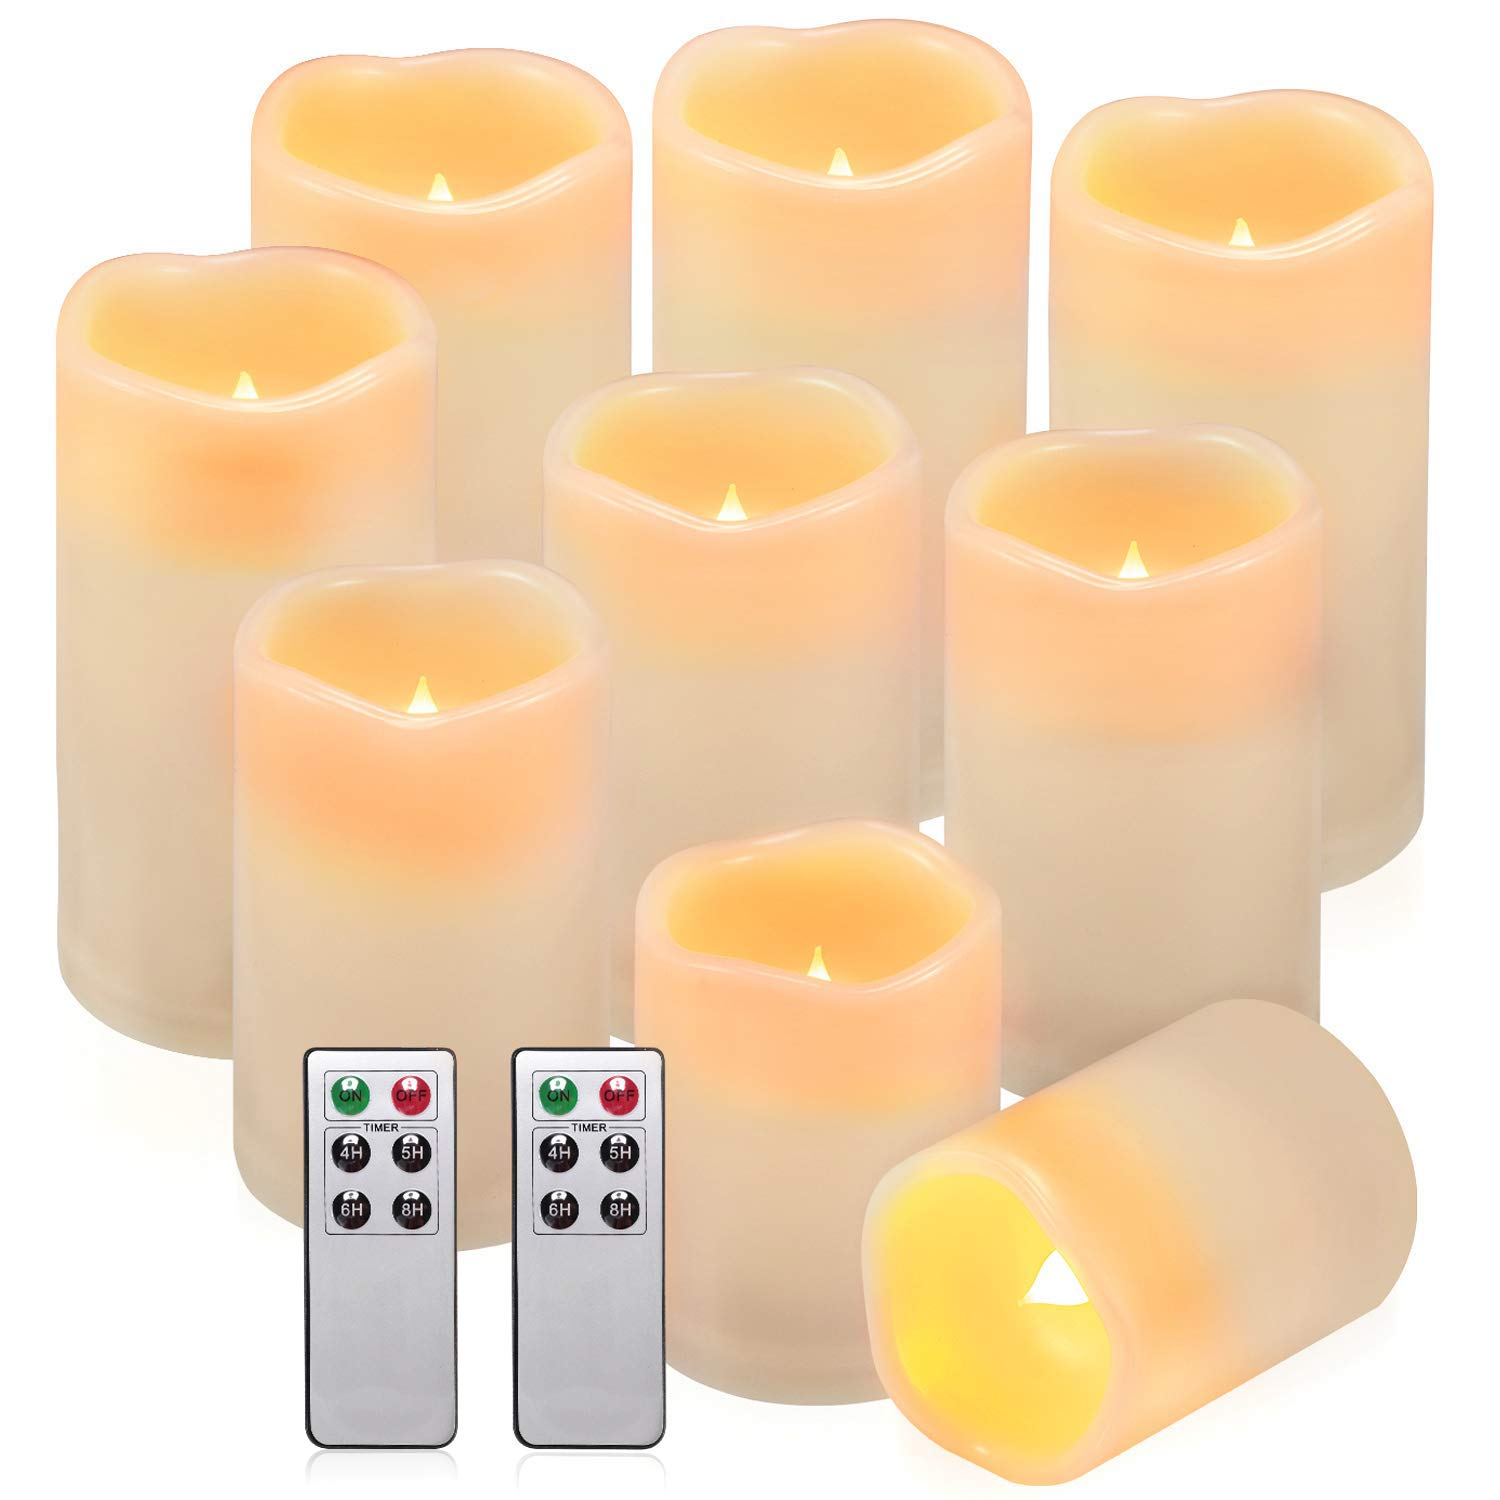 comenzar Flameless Candles, Waterproof Outdoor Indoor Battery Candles Set of 9(H 4'' 5'' 6'' x D 3'') Led Candles with Remote Timer(Batteries not Included) by Comenzar